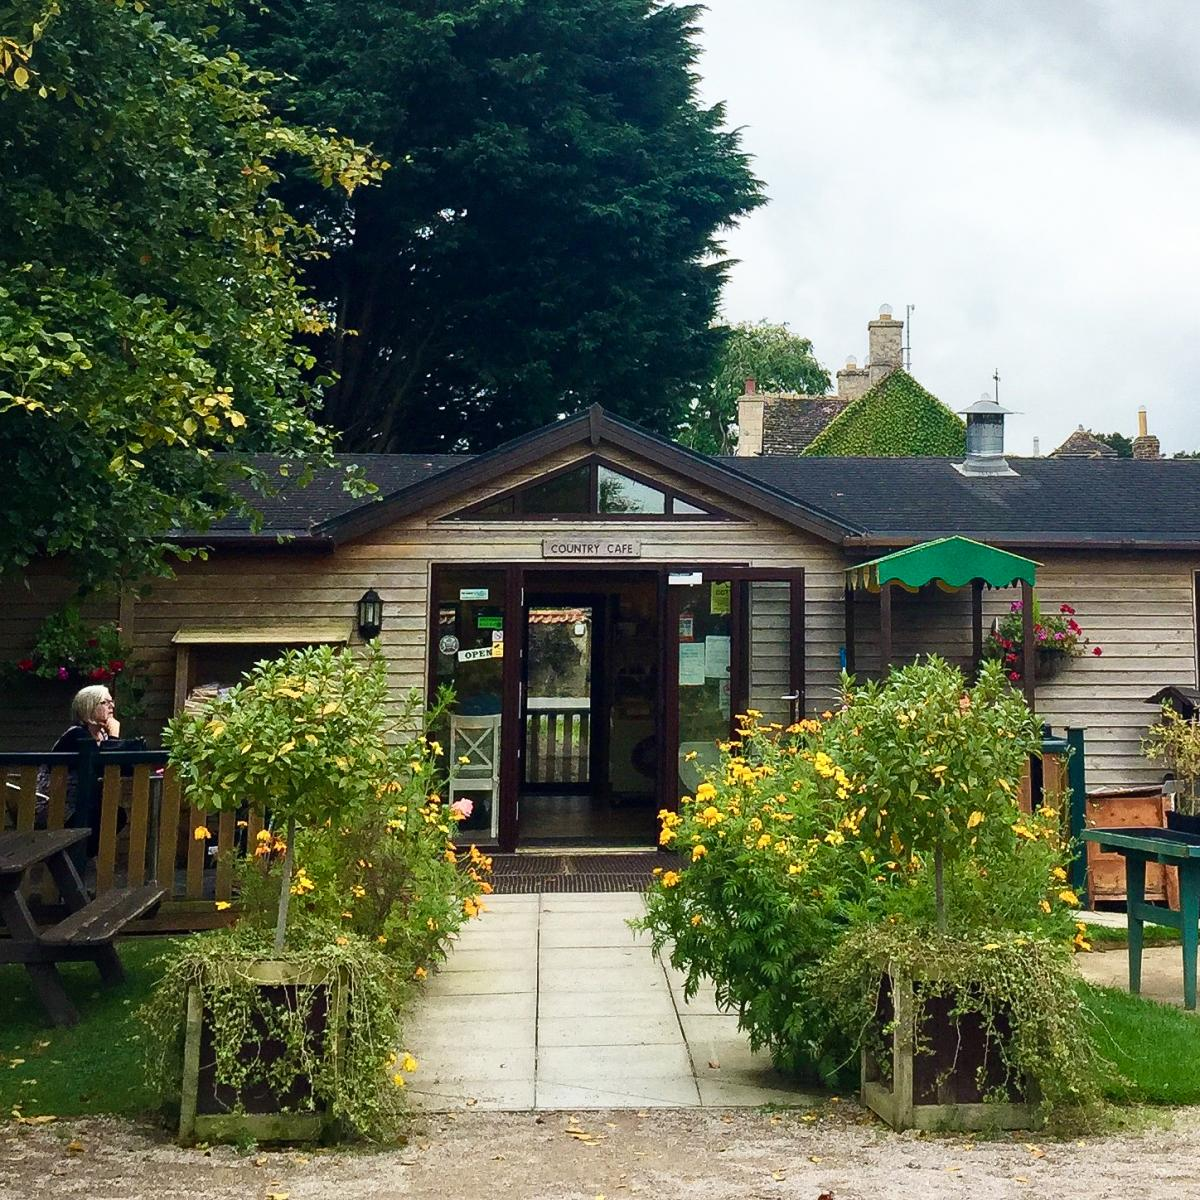 Images from The Lodge Country Café